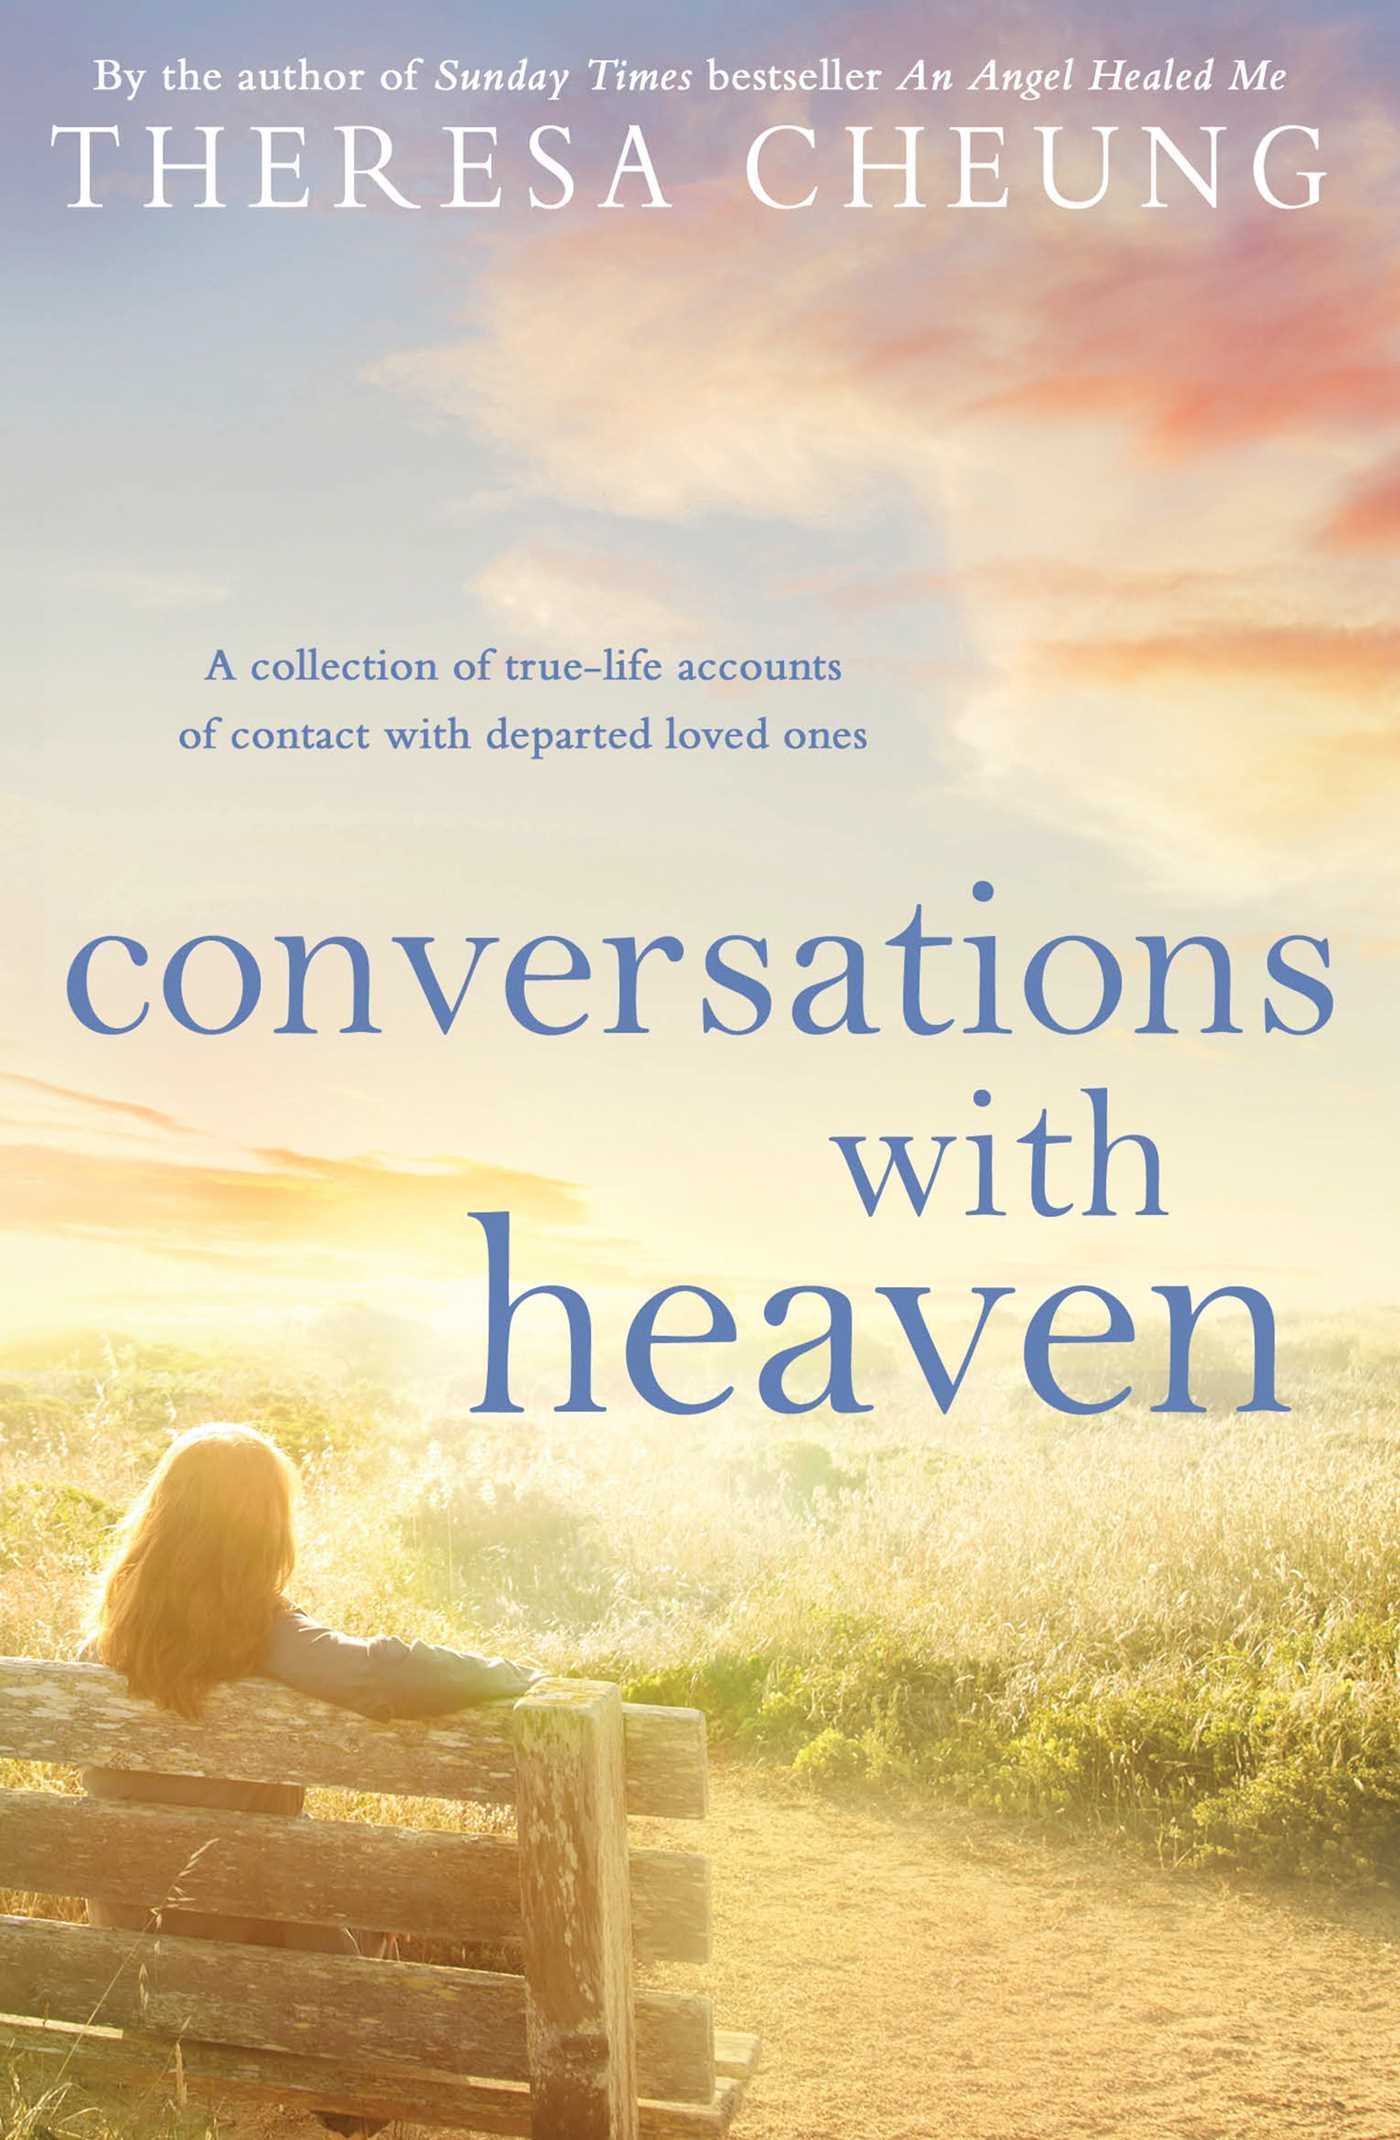 Conversations with heaven 9781471112386 hr